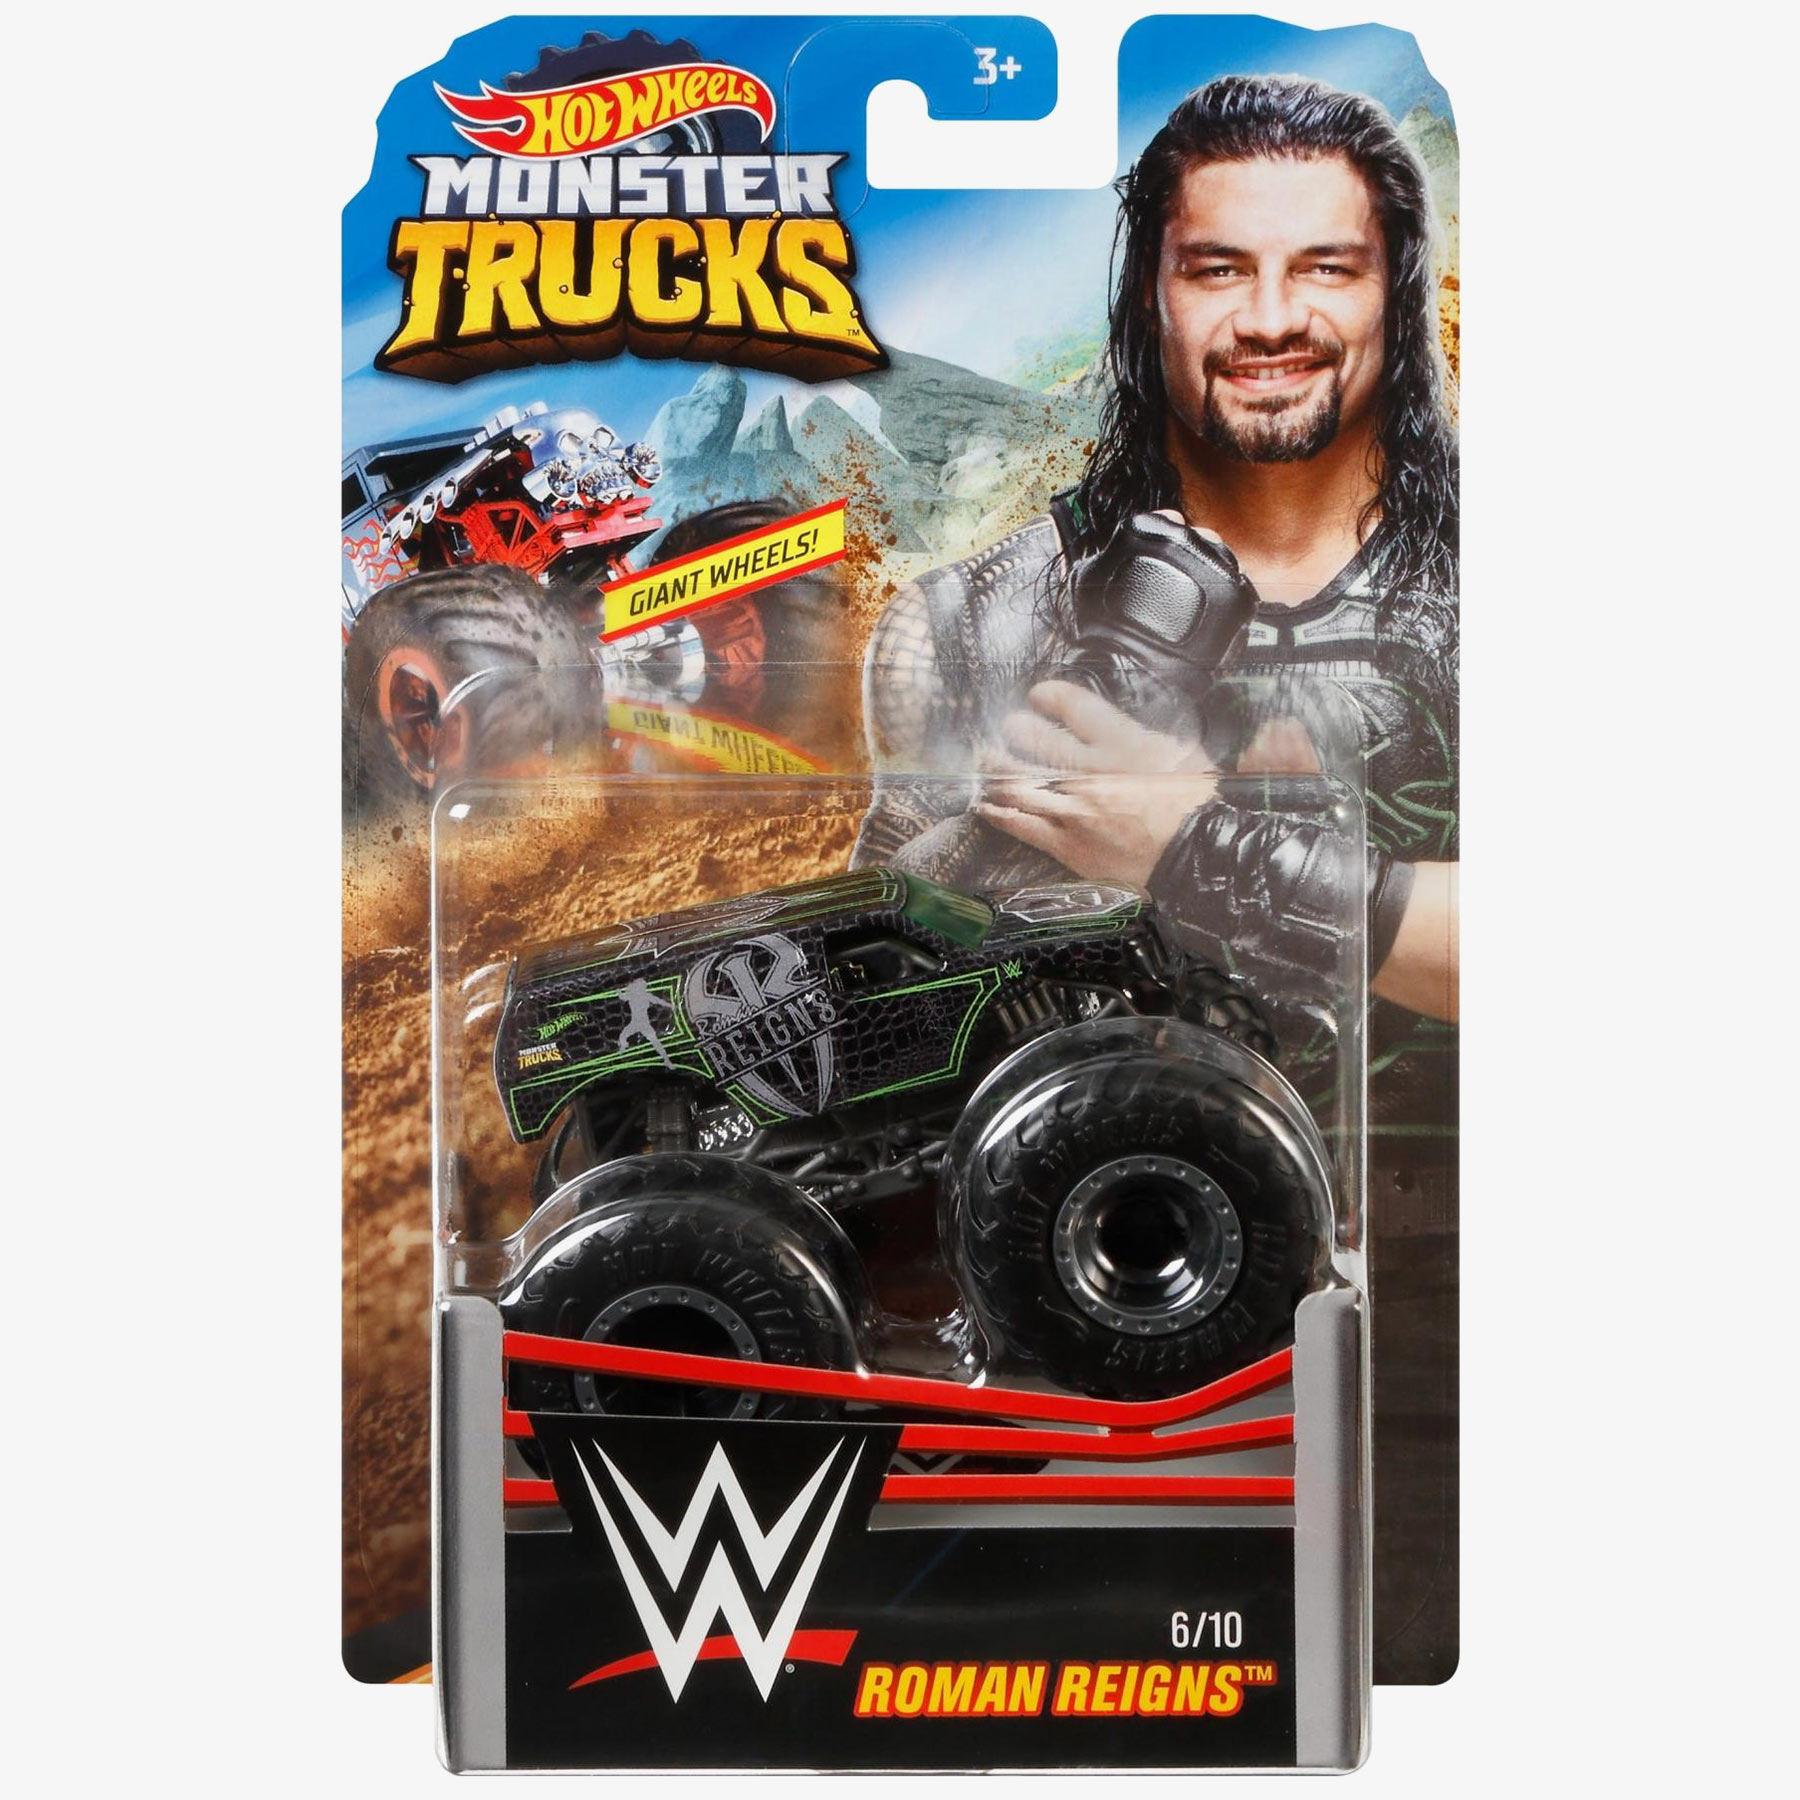 Roman Reigns Hot Wheels Monster Trucks Wwe Die Cast Collection